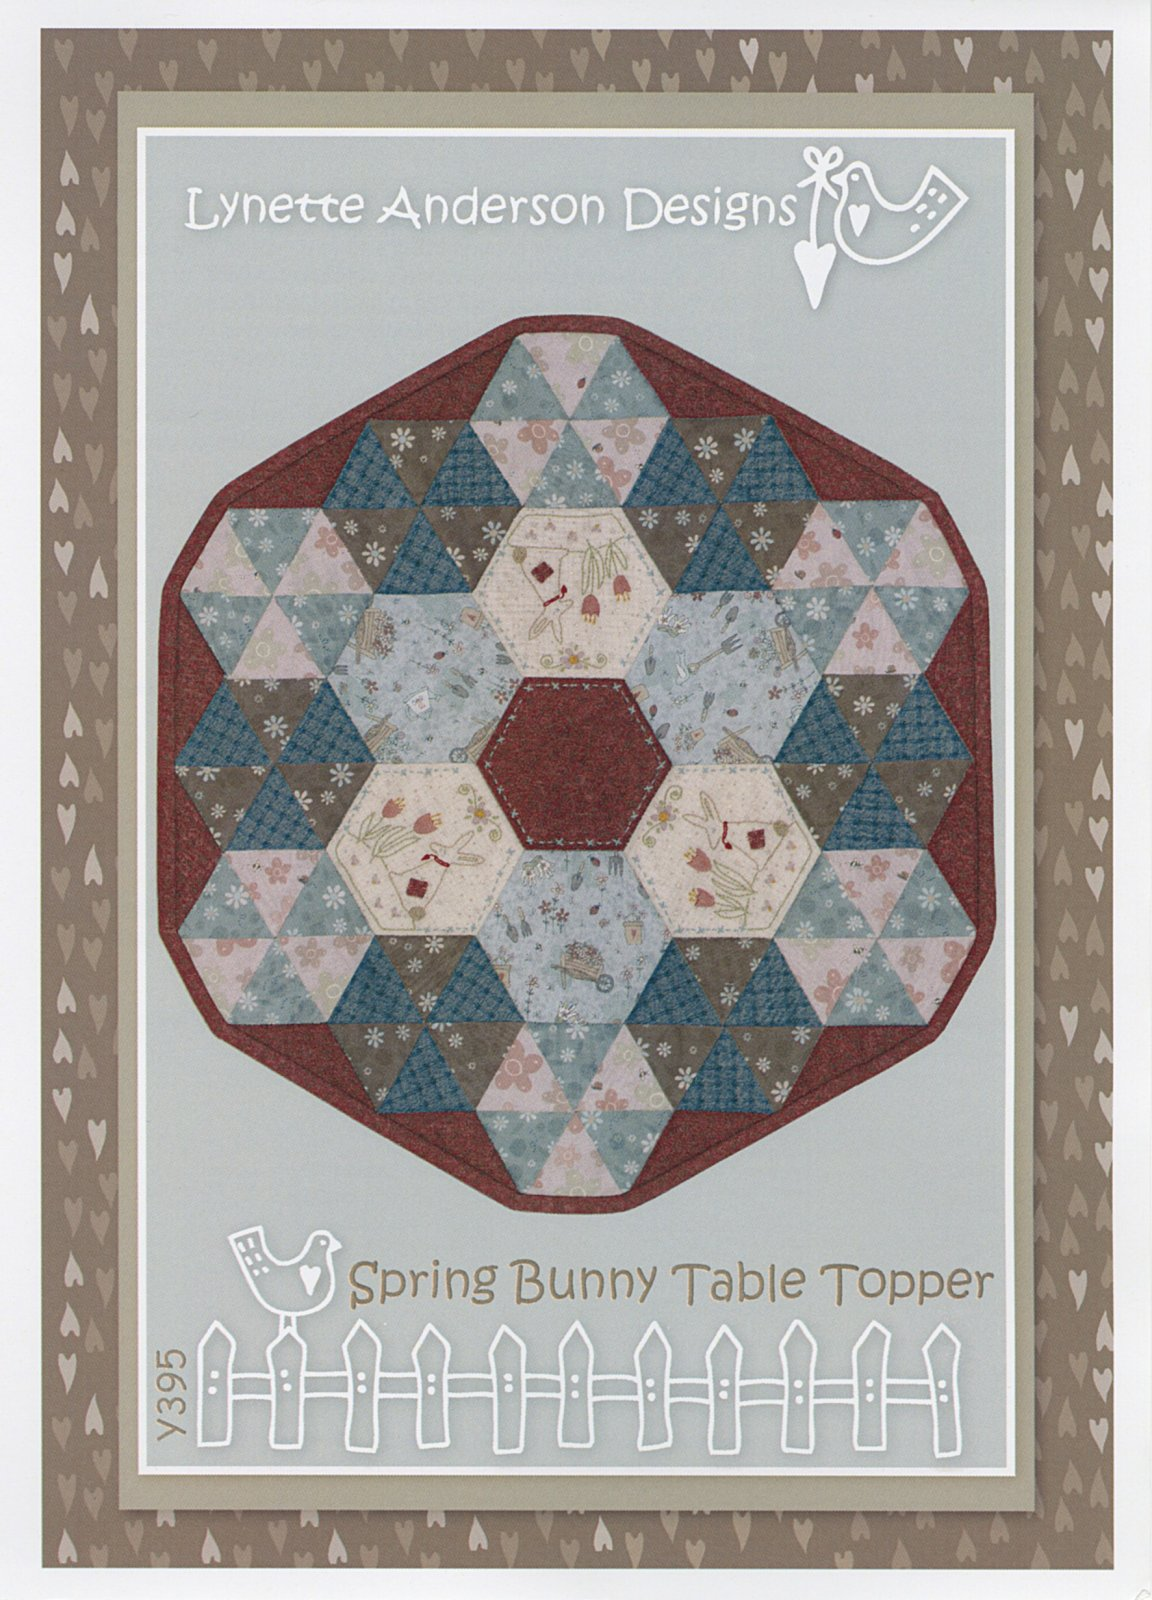 Spring Bunny Table Topper